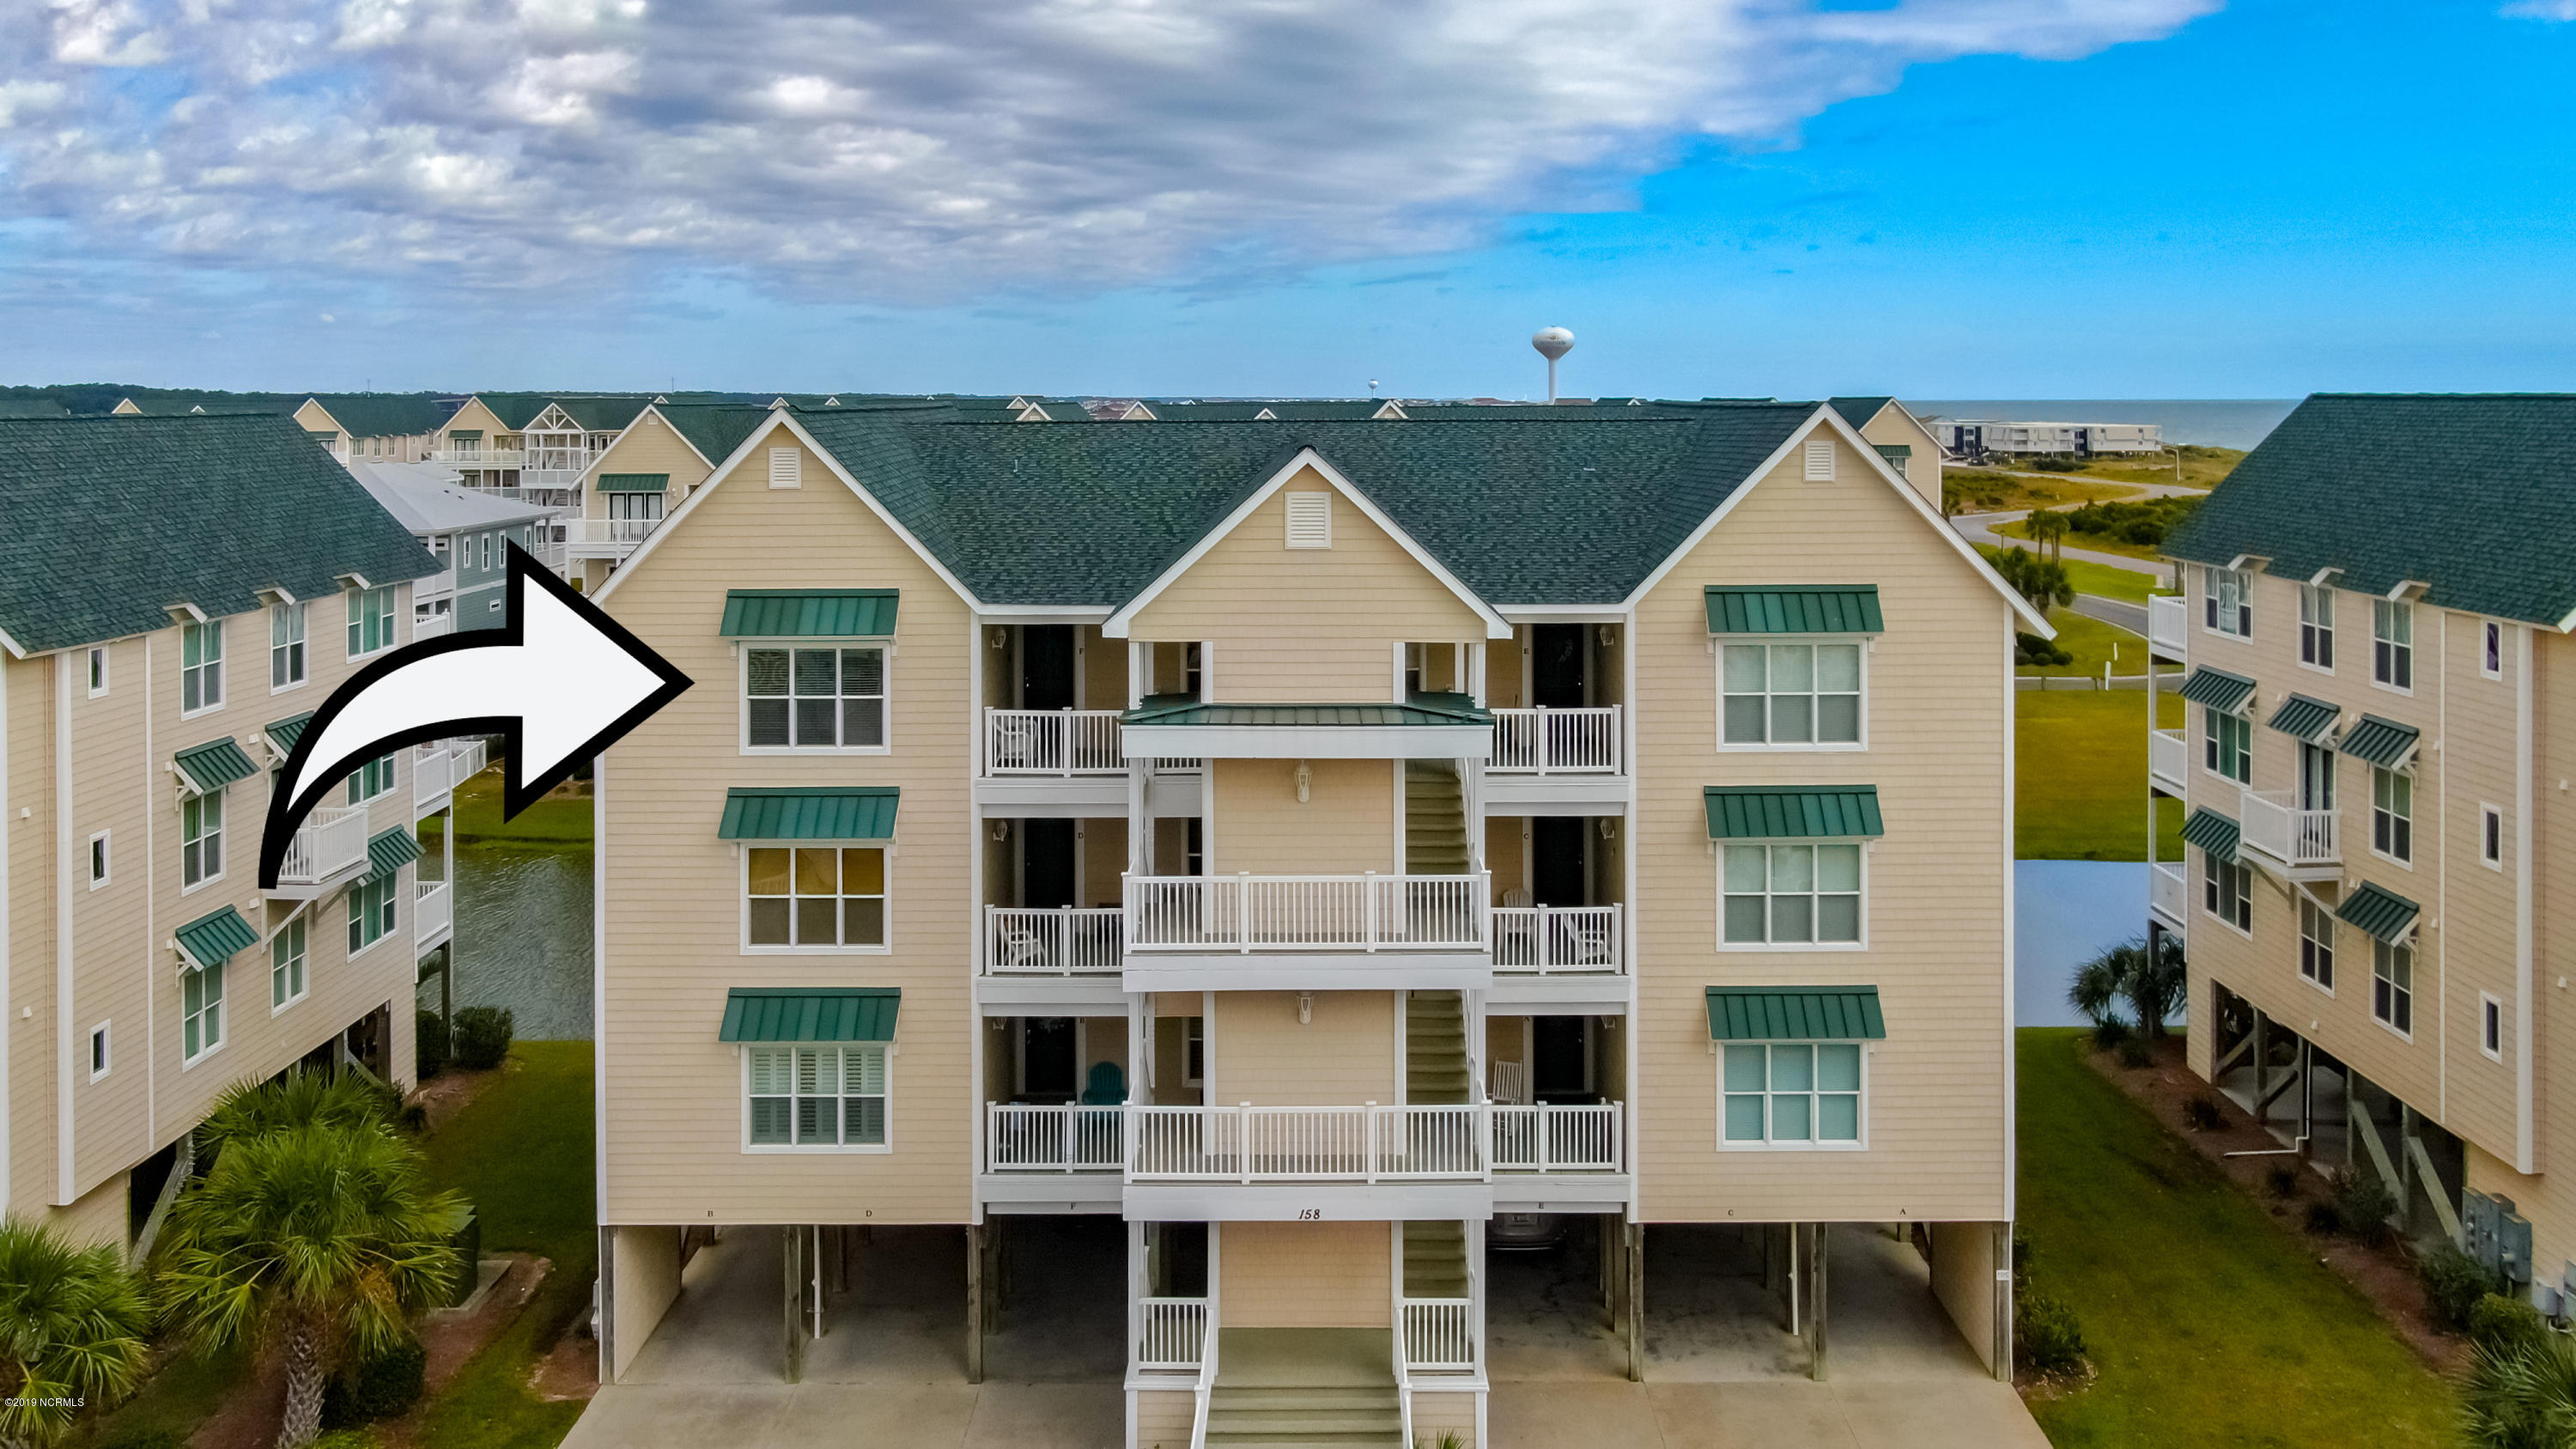 158 F Via Old Sound Boulevard Ocean Isle Beach, NC 28469